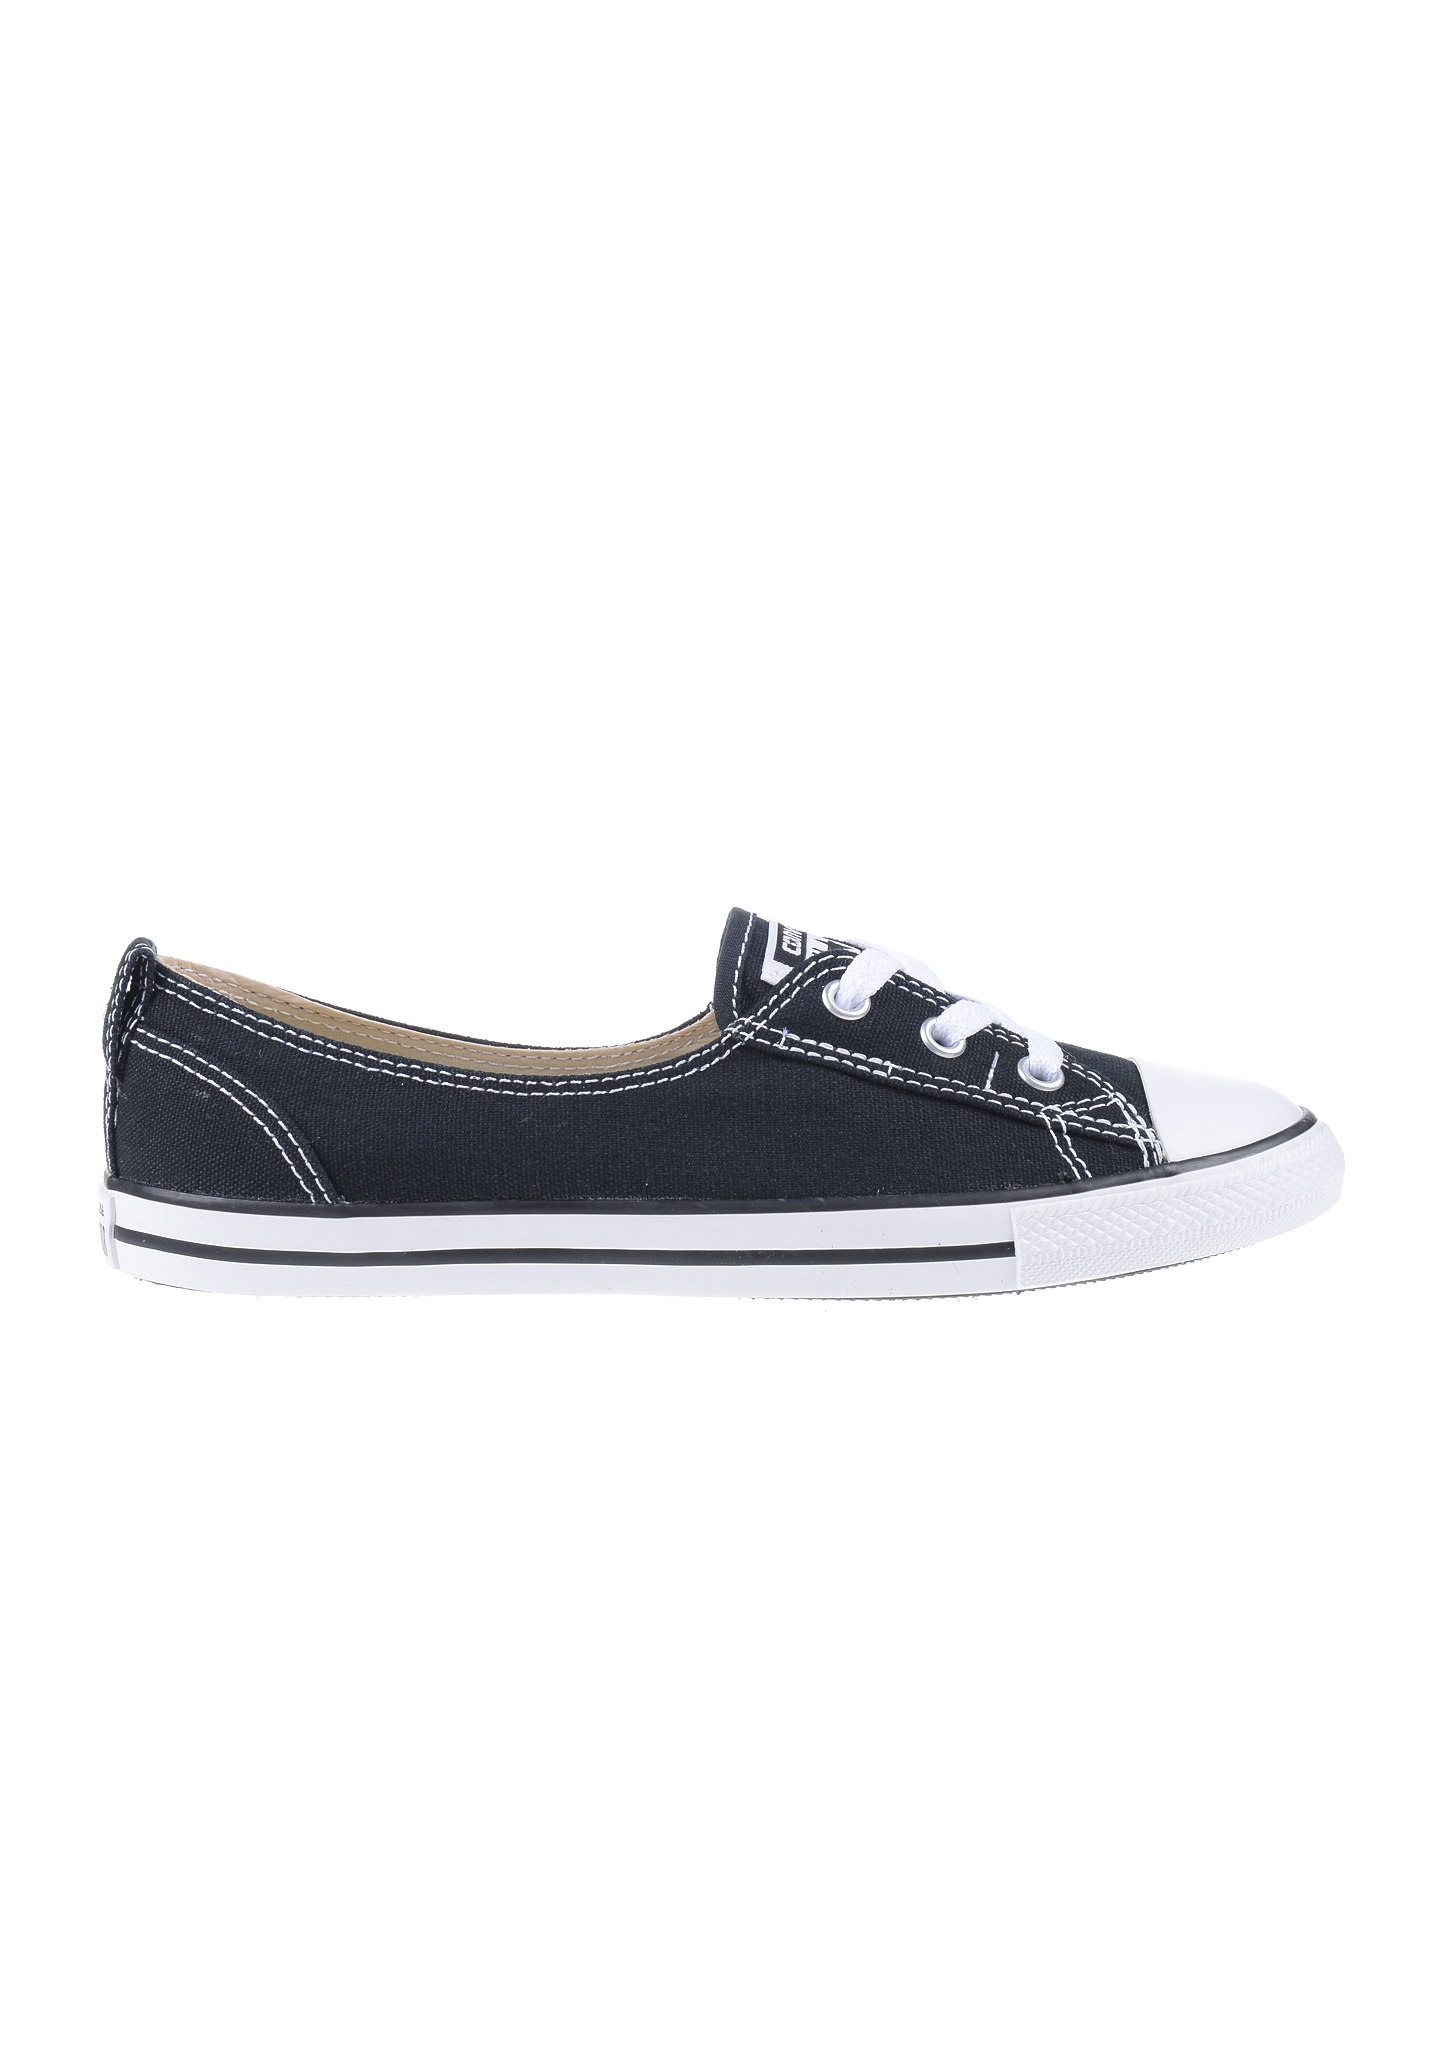 converse chuck taylor all star ballet lace damen sneaker. Black Bedroom Furniture Sets. Home Design Ideas